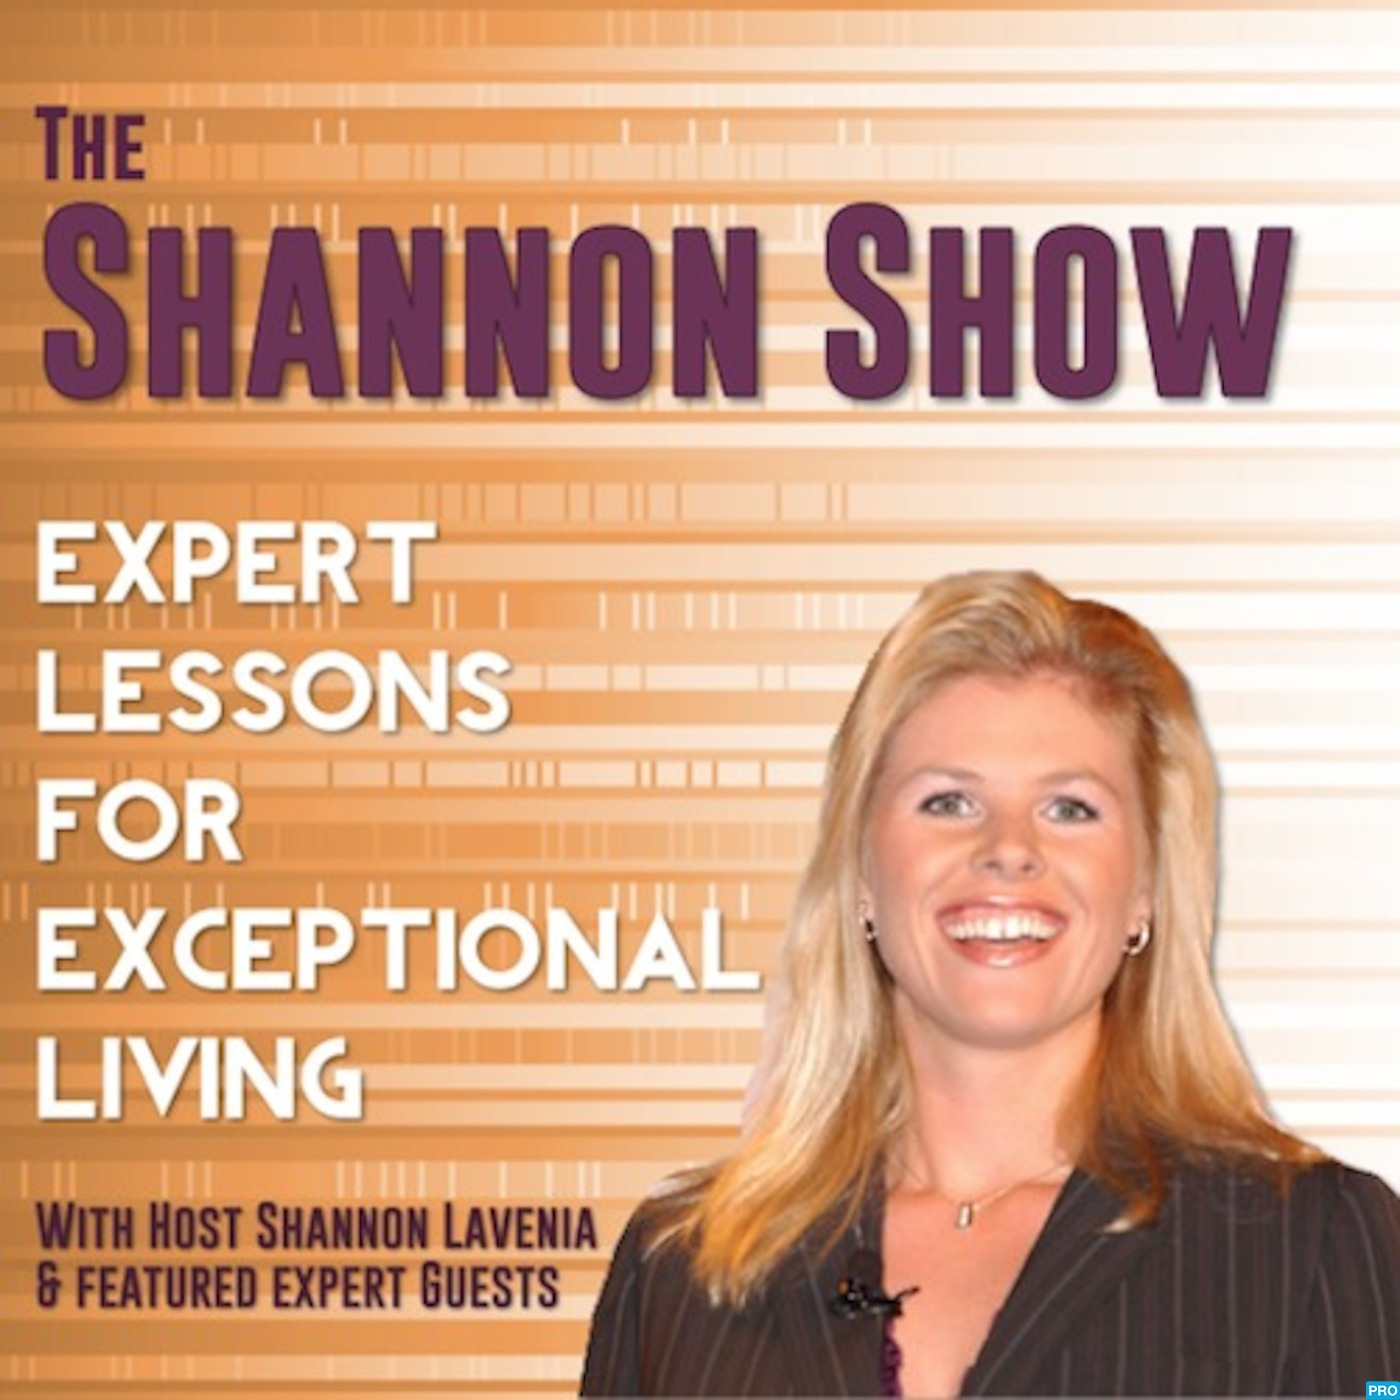 The Shannon Show